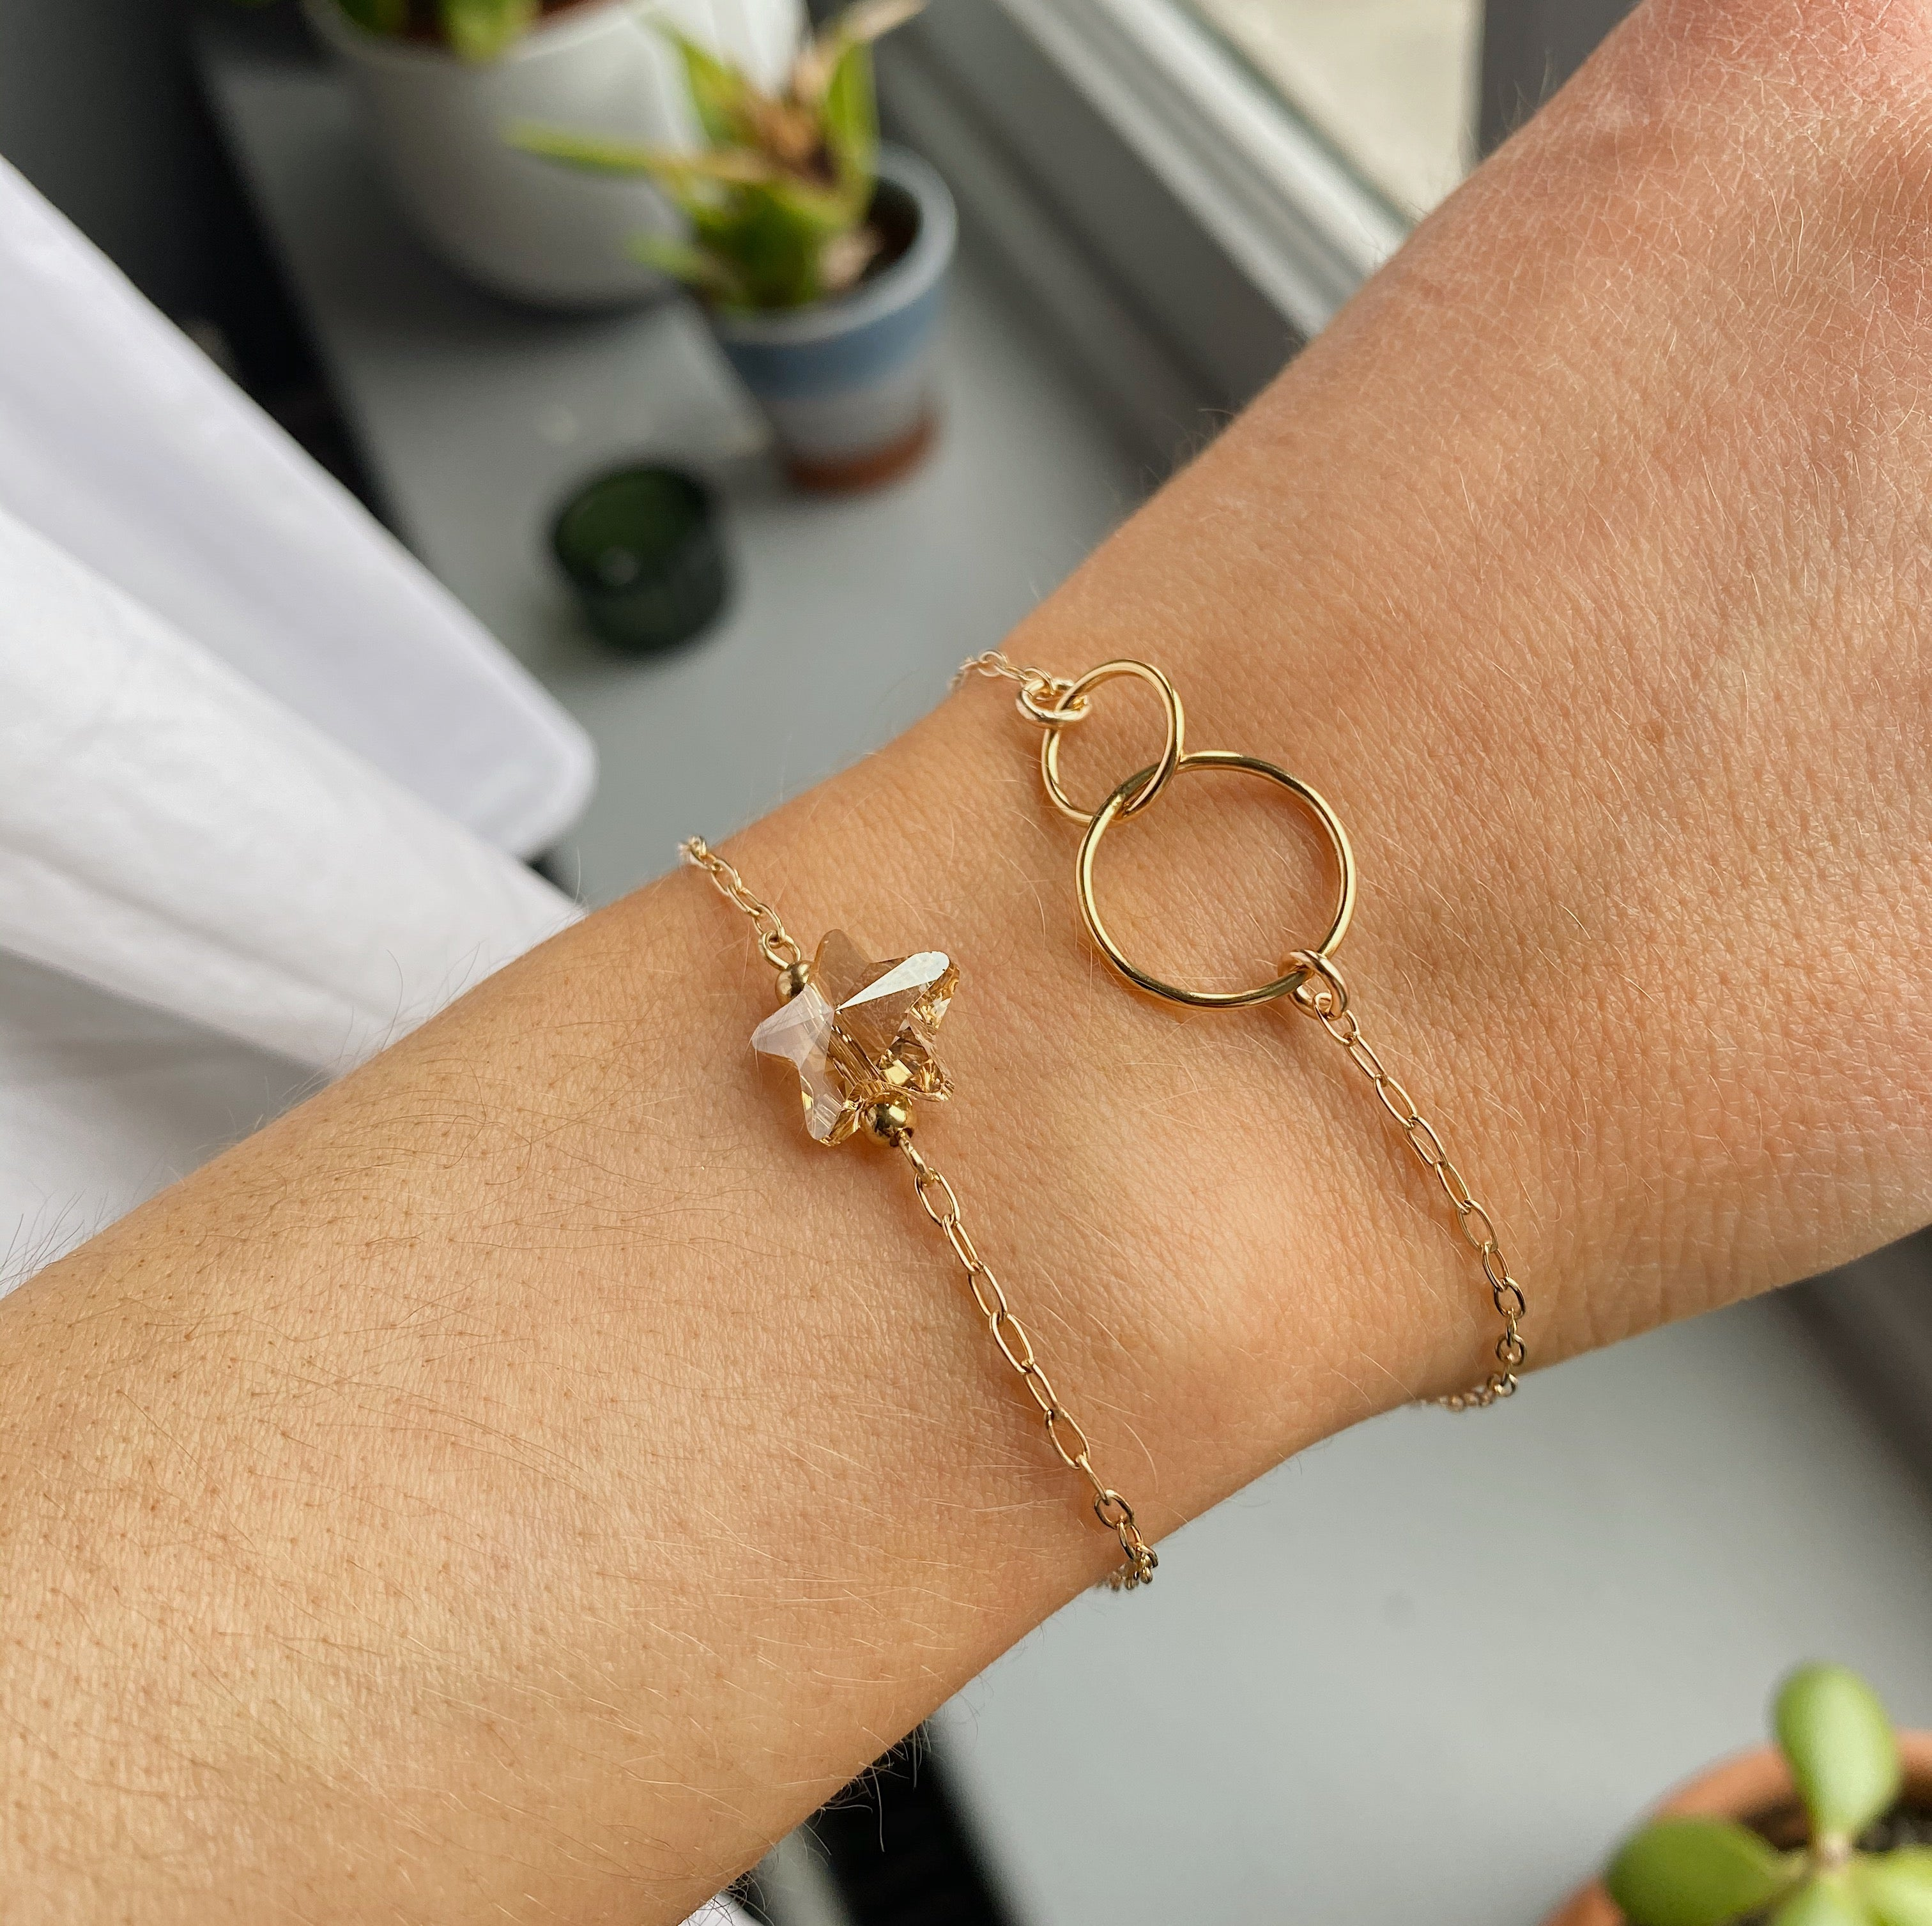 Gold Filled Double Circle Bracelet